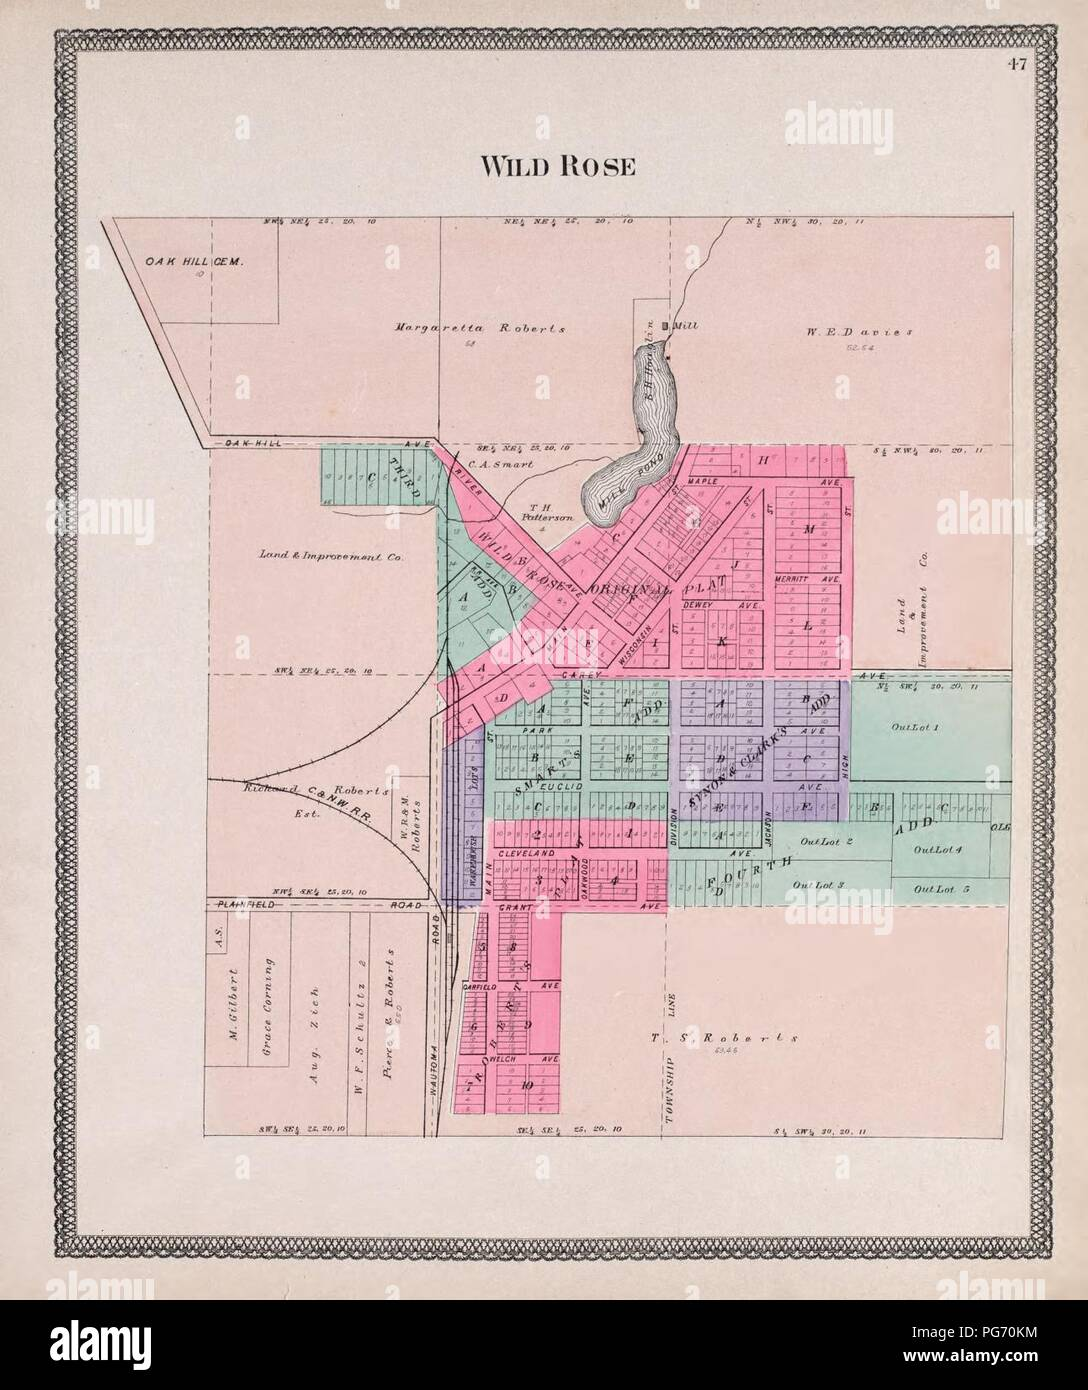 Atlas of Waushara County, Wisconsin - containing maps of ...